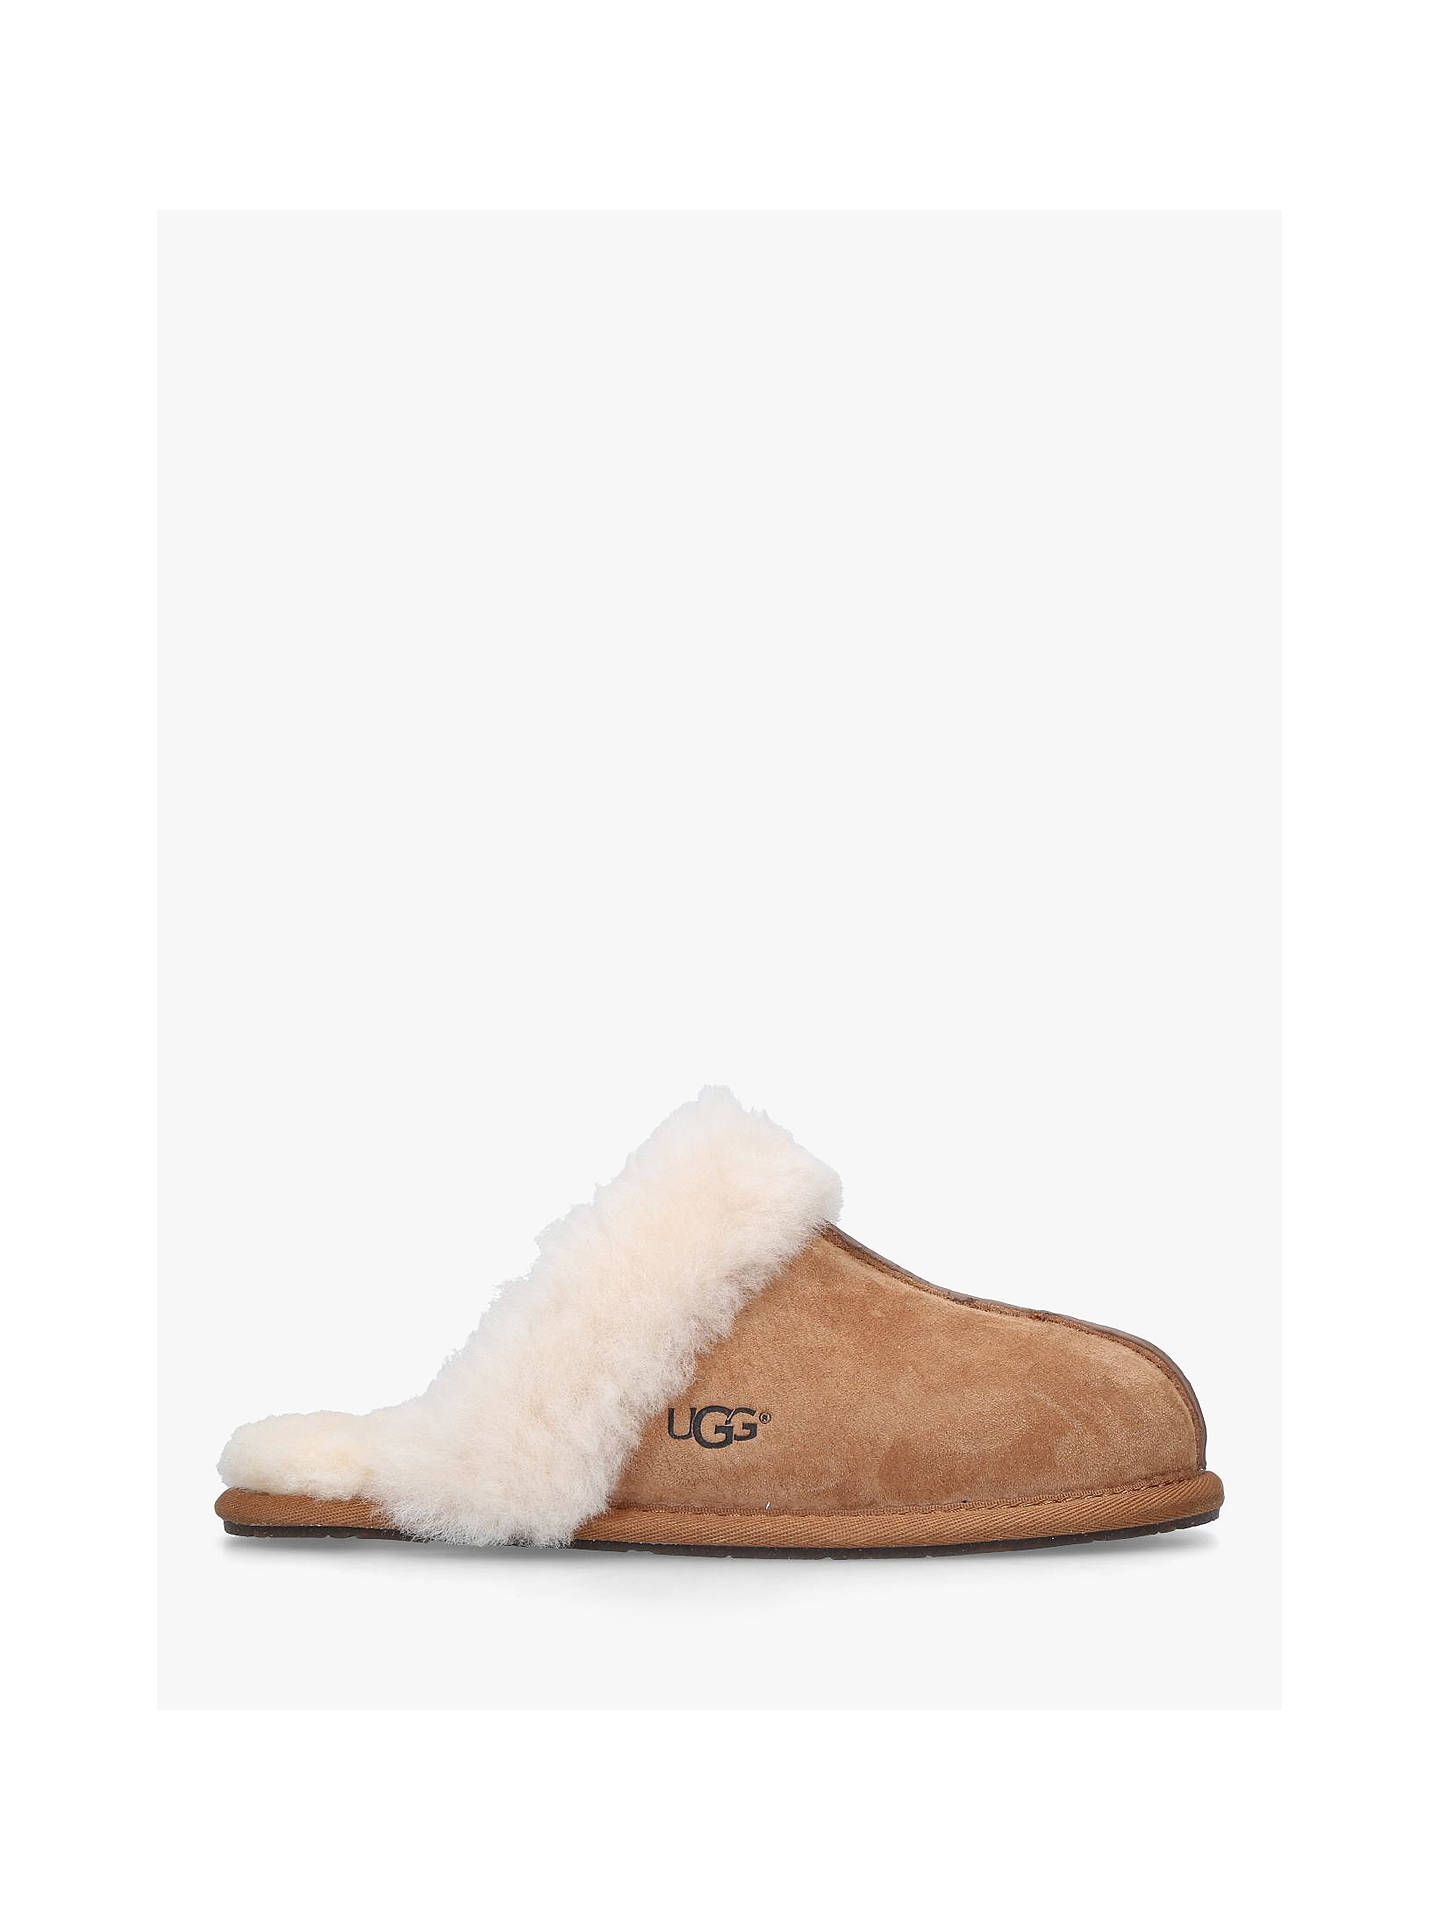 ece0413407d UGG Scuffette II Sheepskin Slippers at John Lewis & Partners